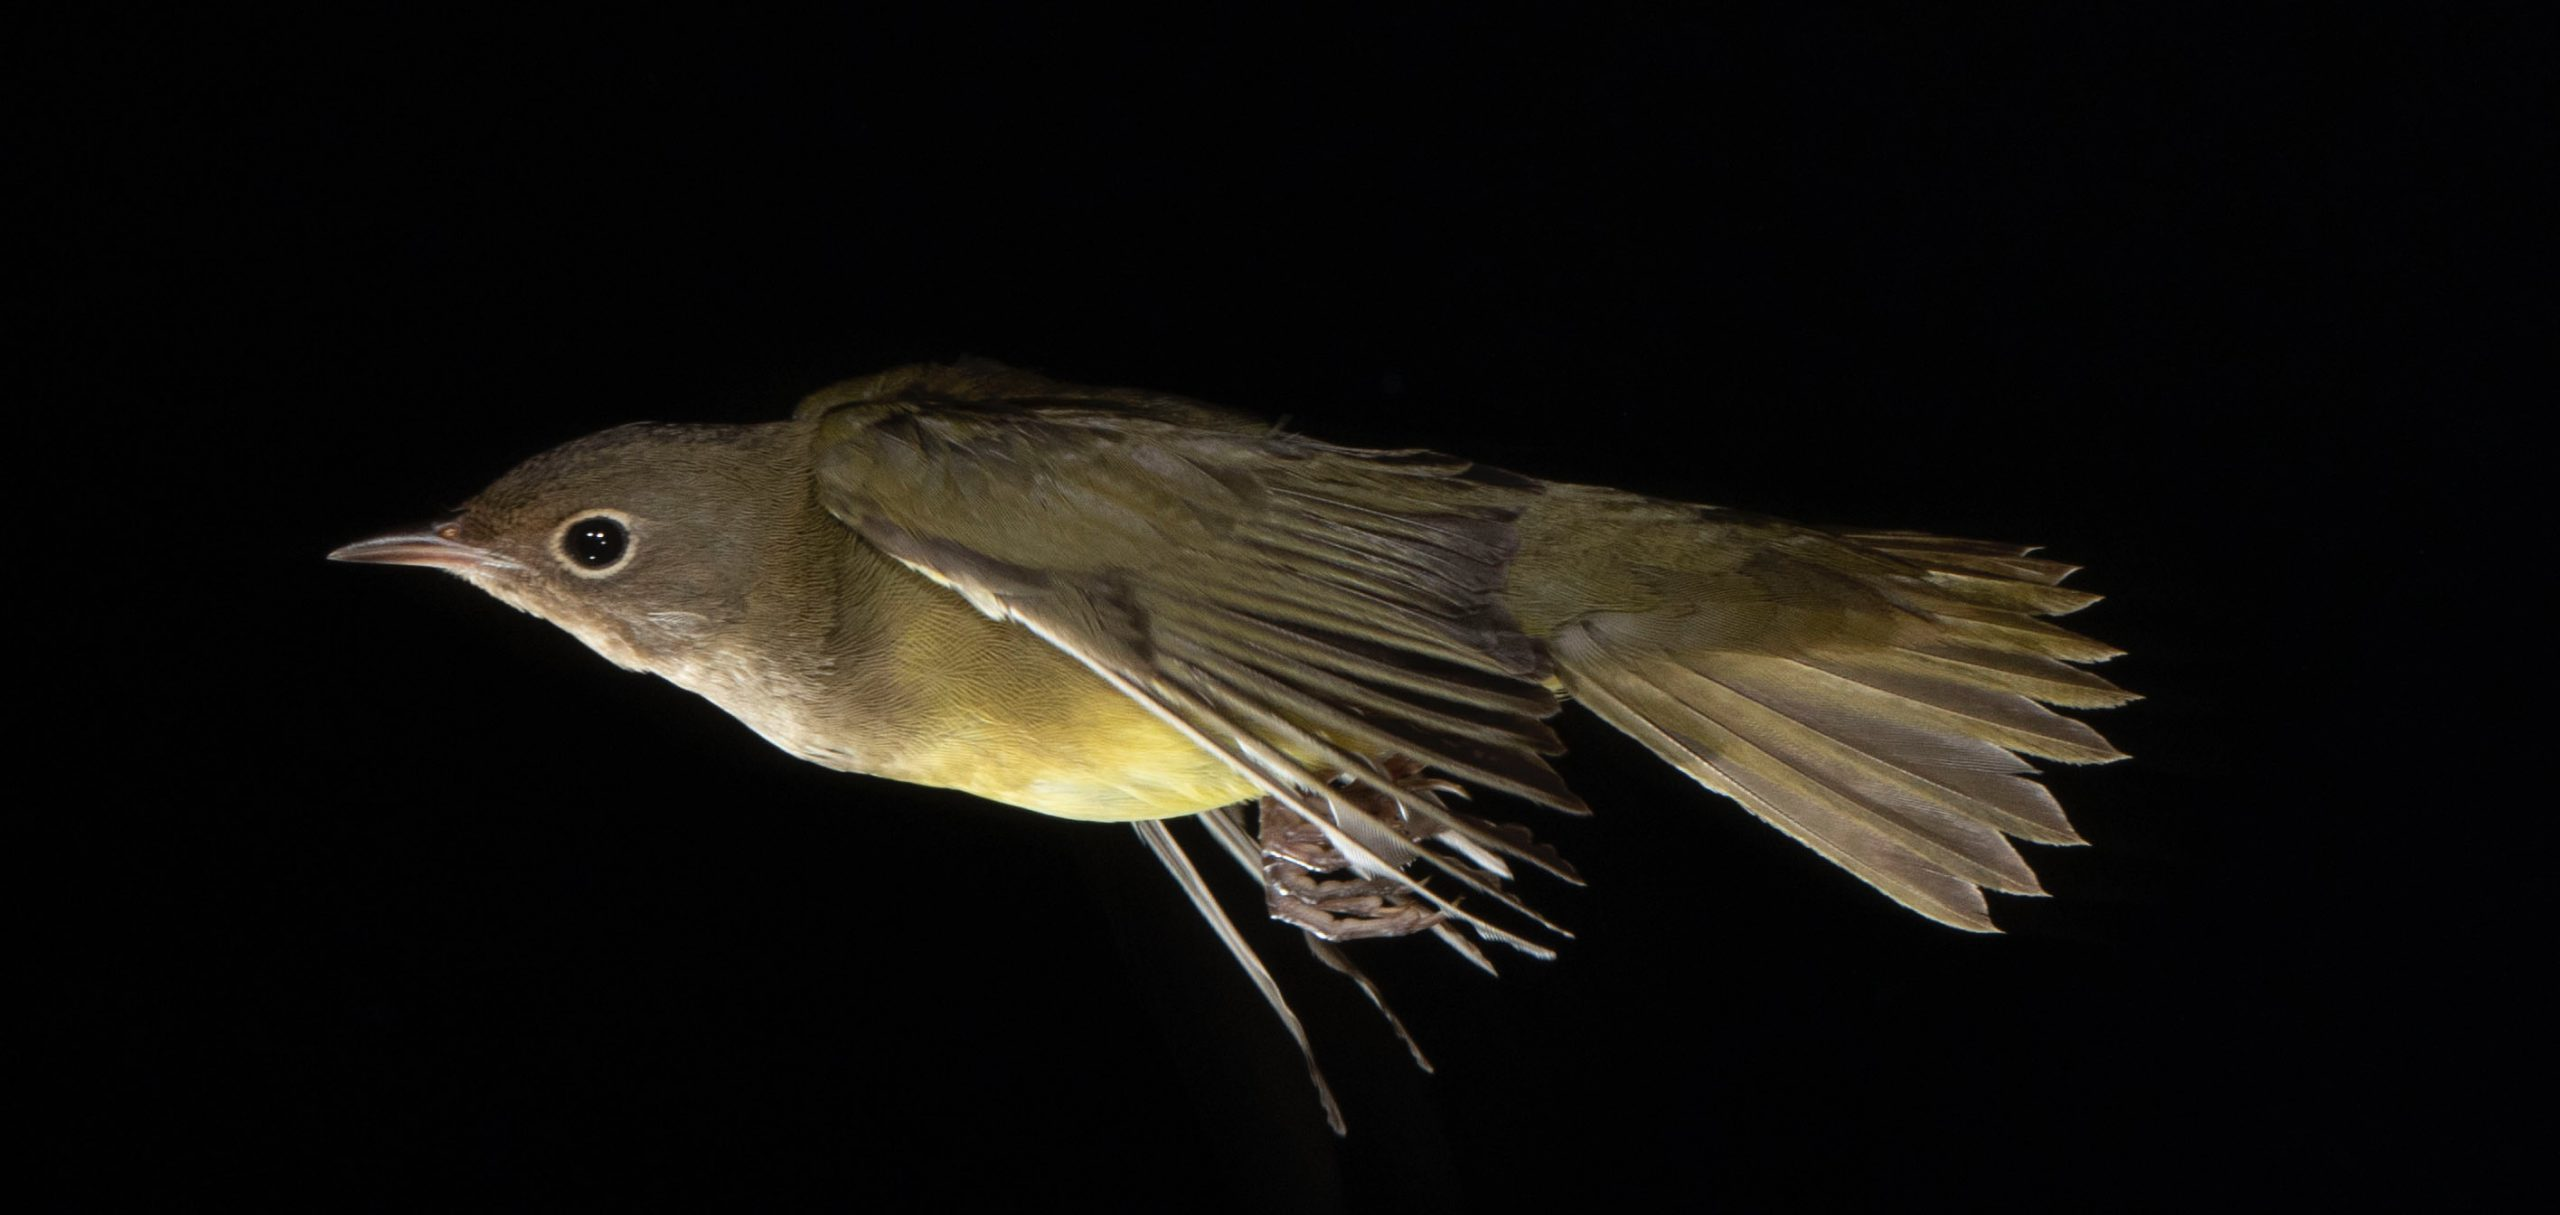 Connecticut Warbler in flight in front of a dark background